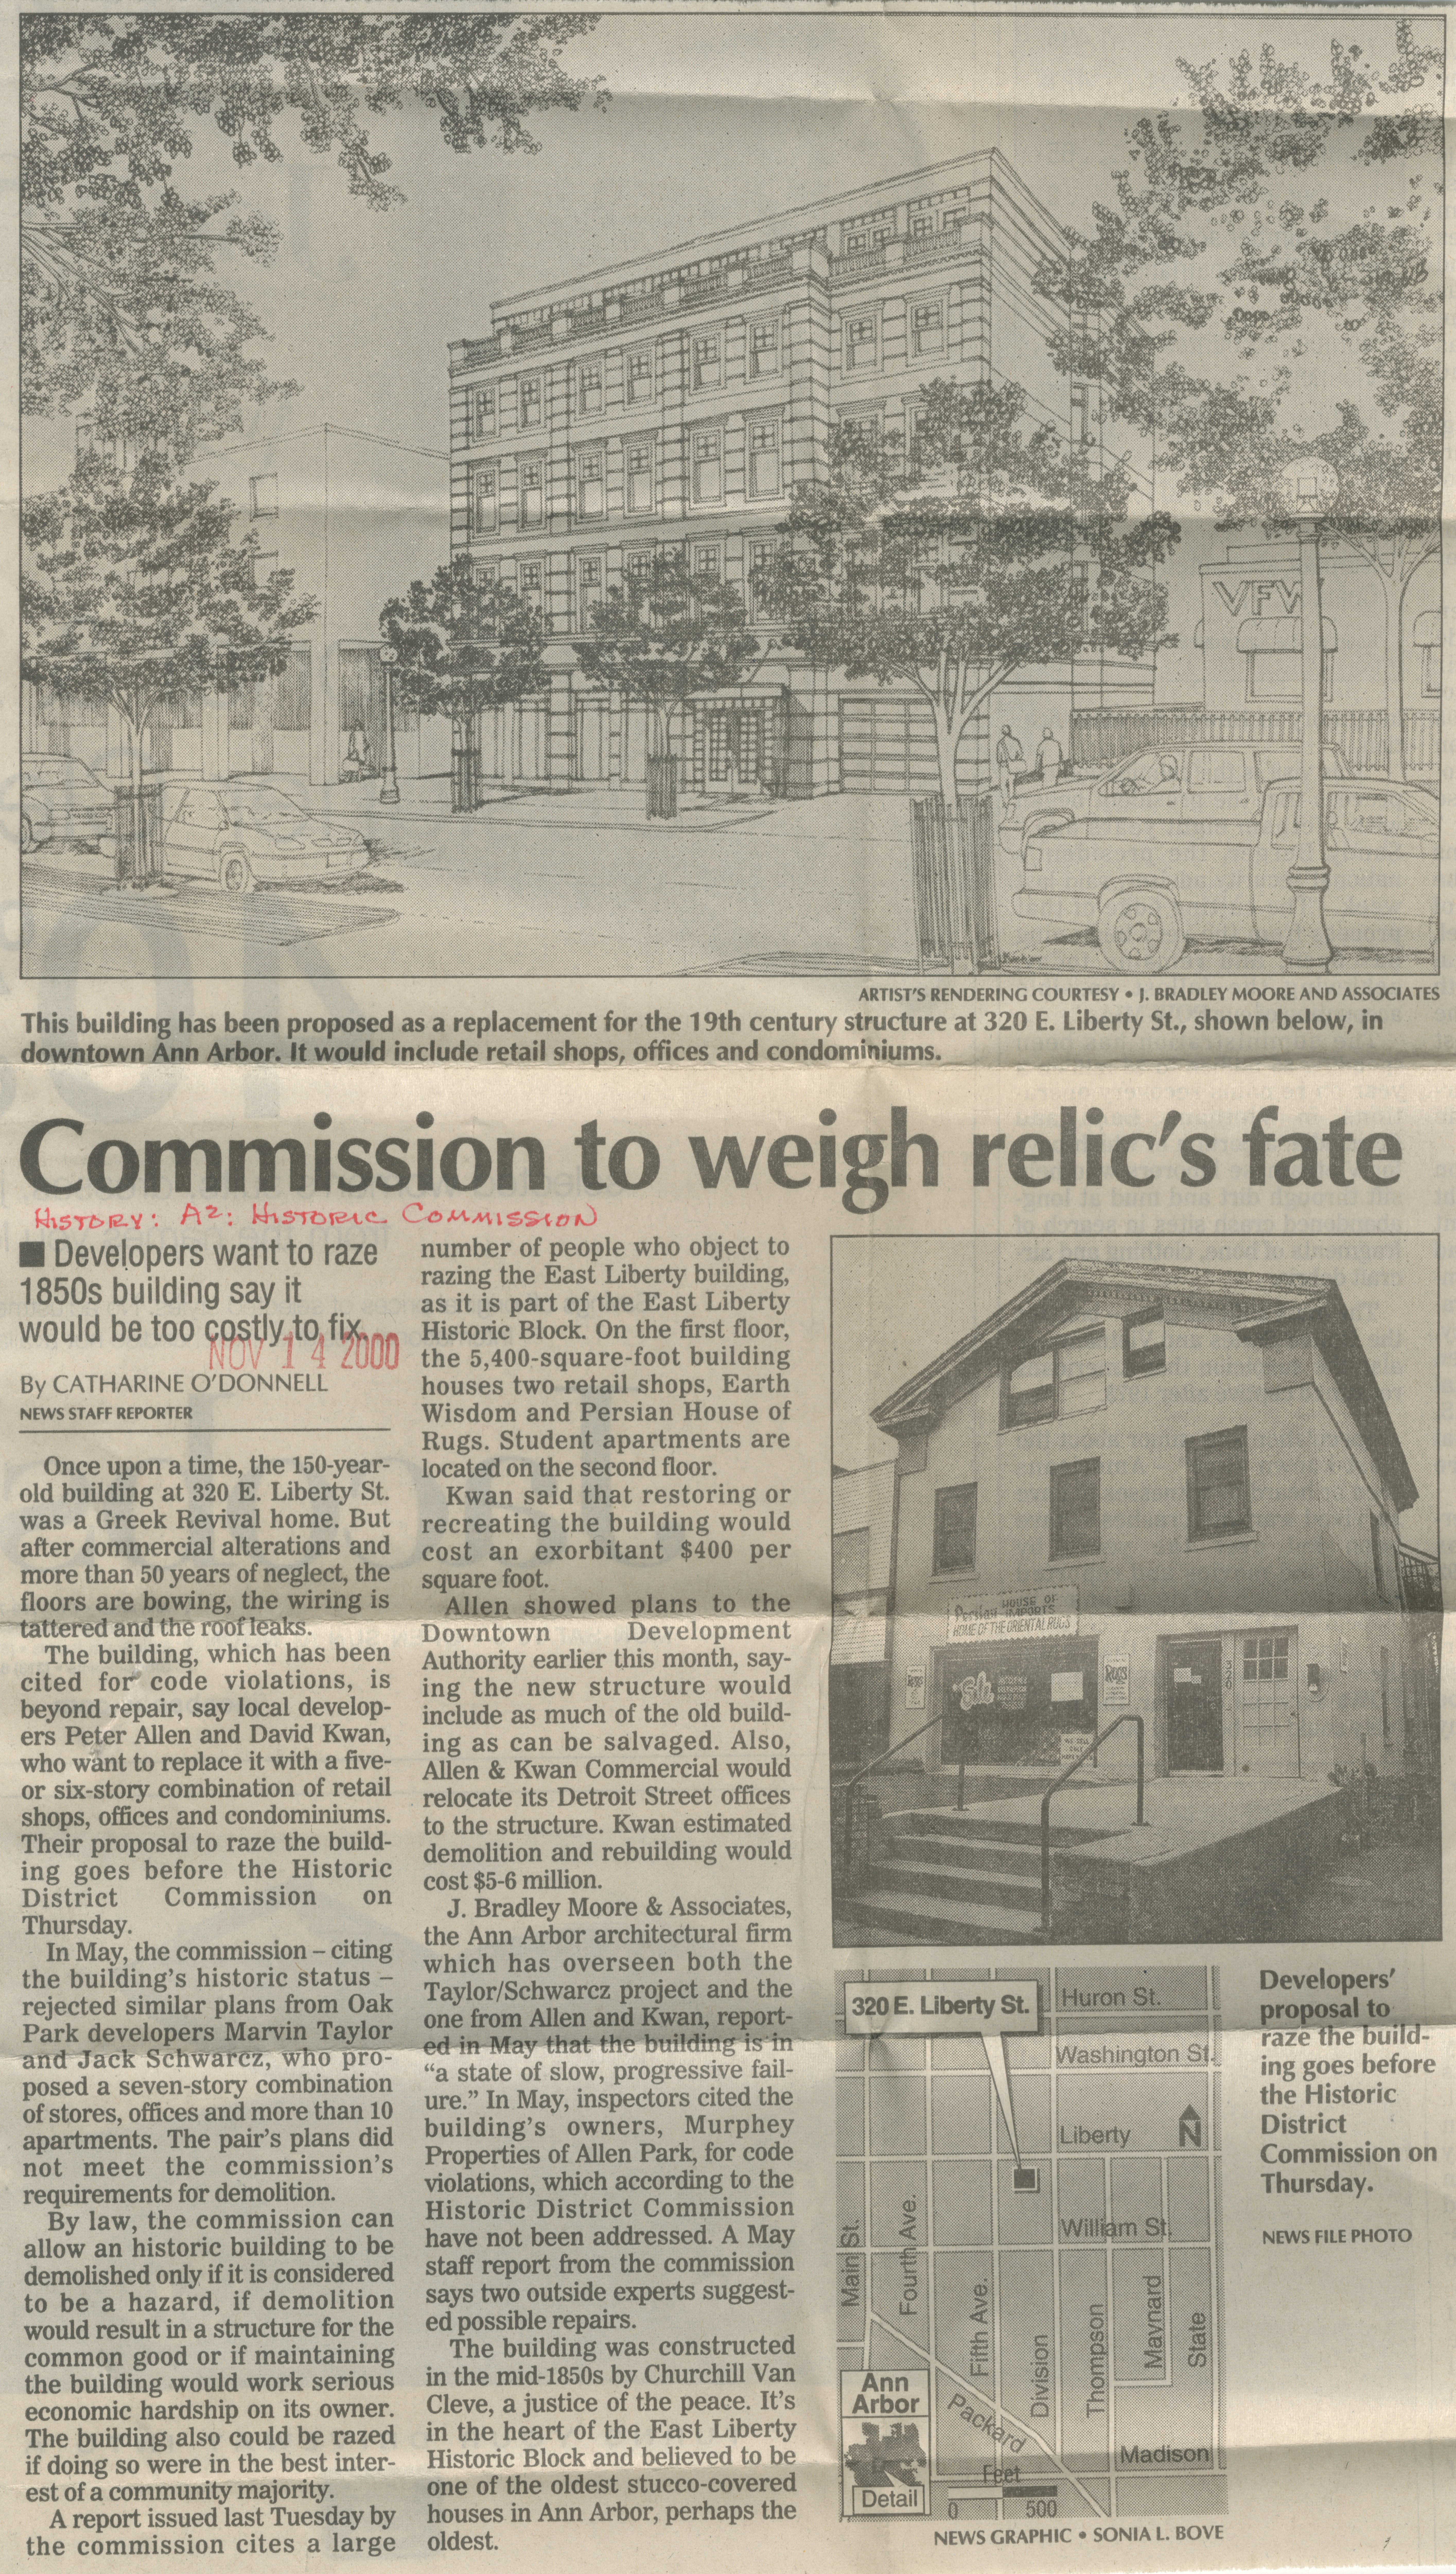 Commission to weigh relic's fate image